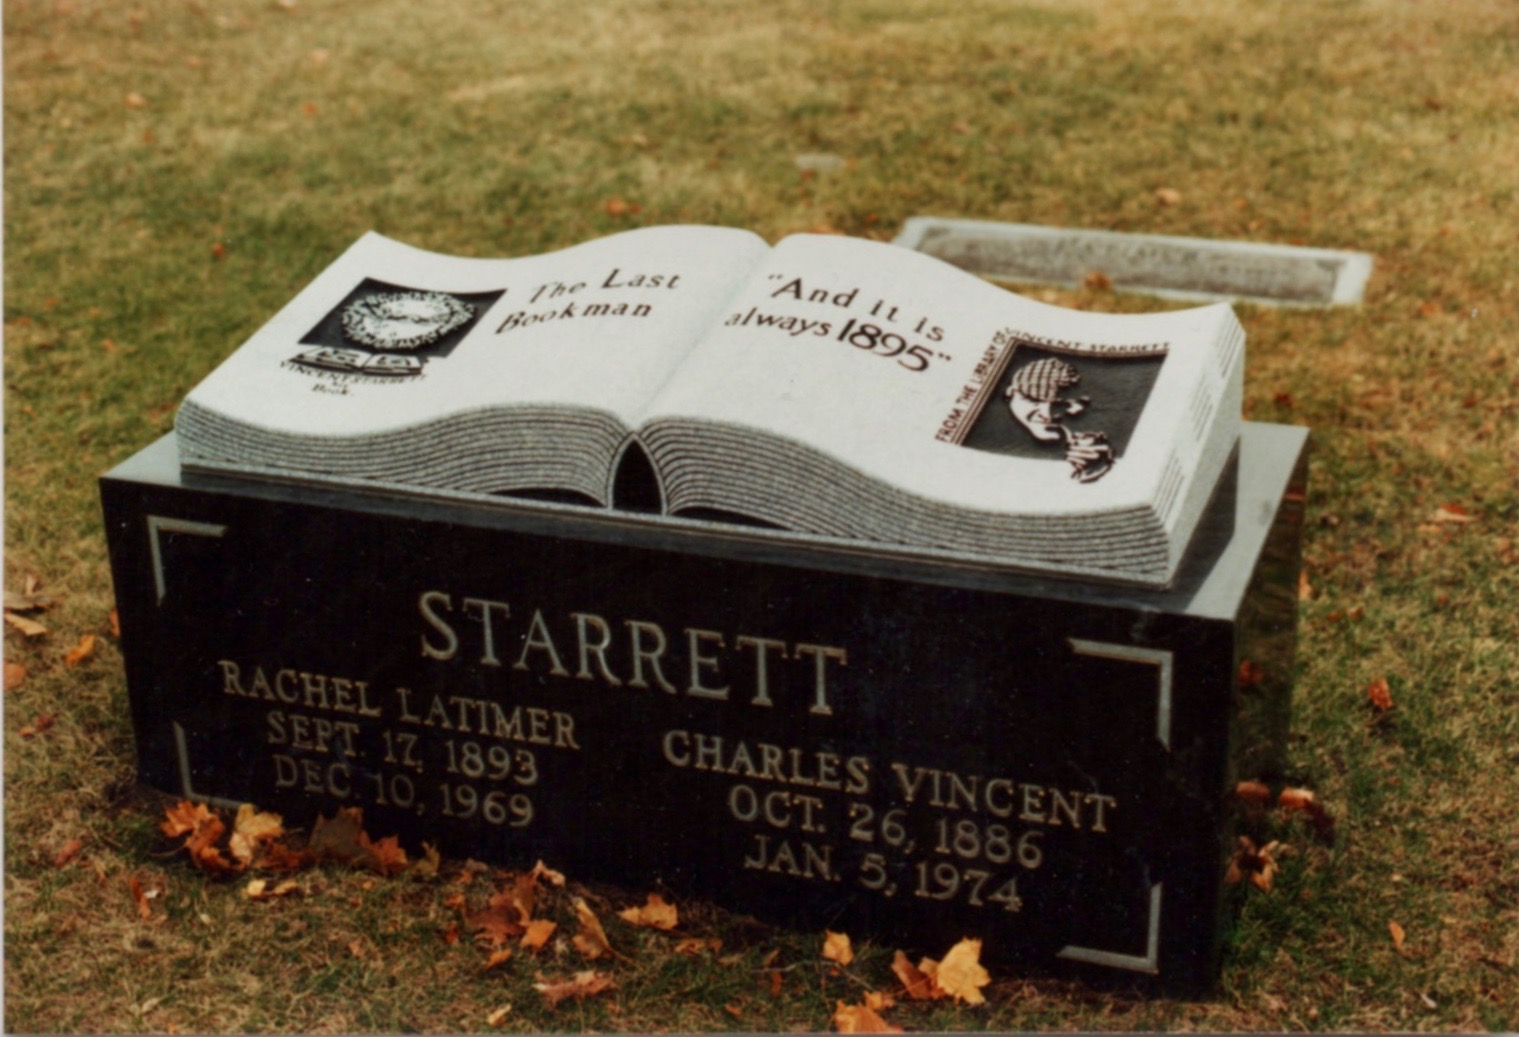 Donors to the initial campaign received this photo showing the pristine stone.